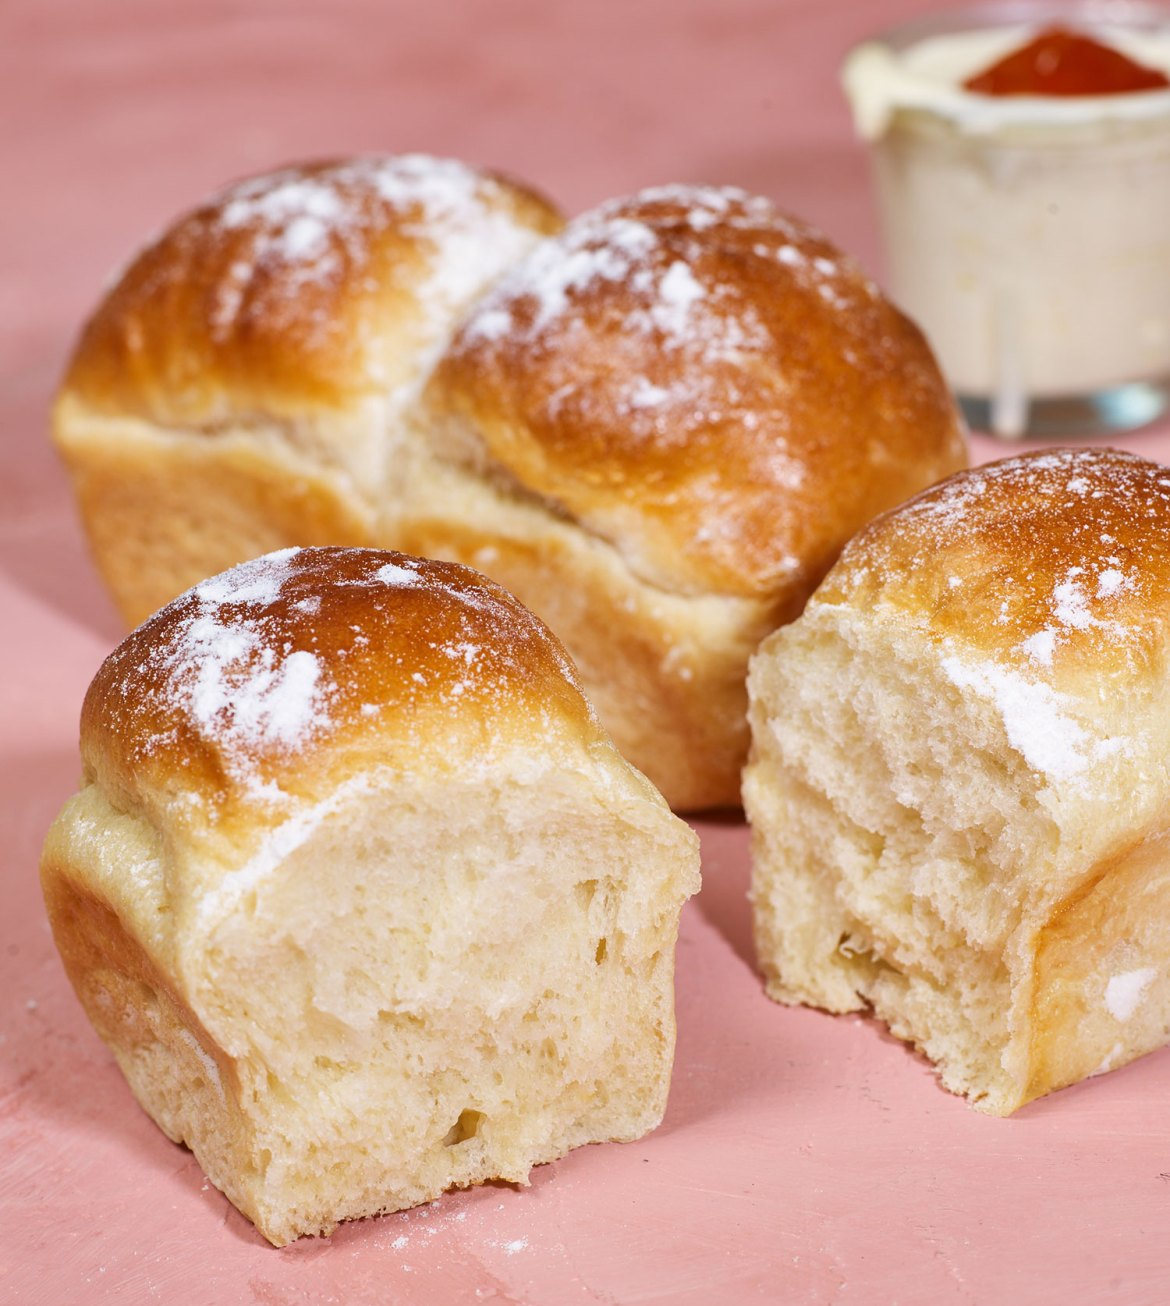 Brioche bread loaves are a great addition to any chef or home cook's repertoire